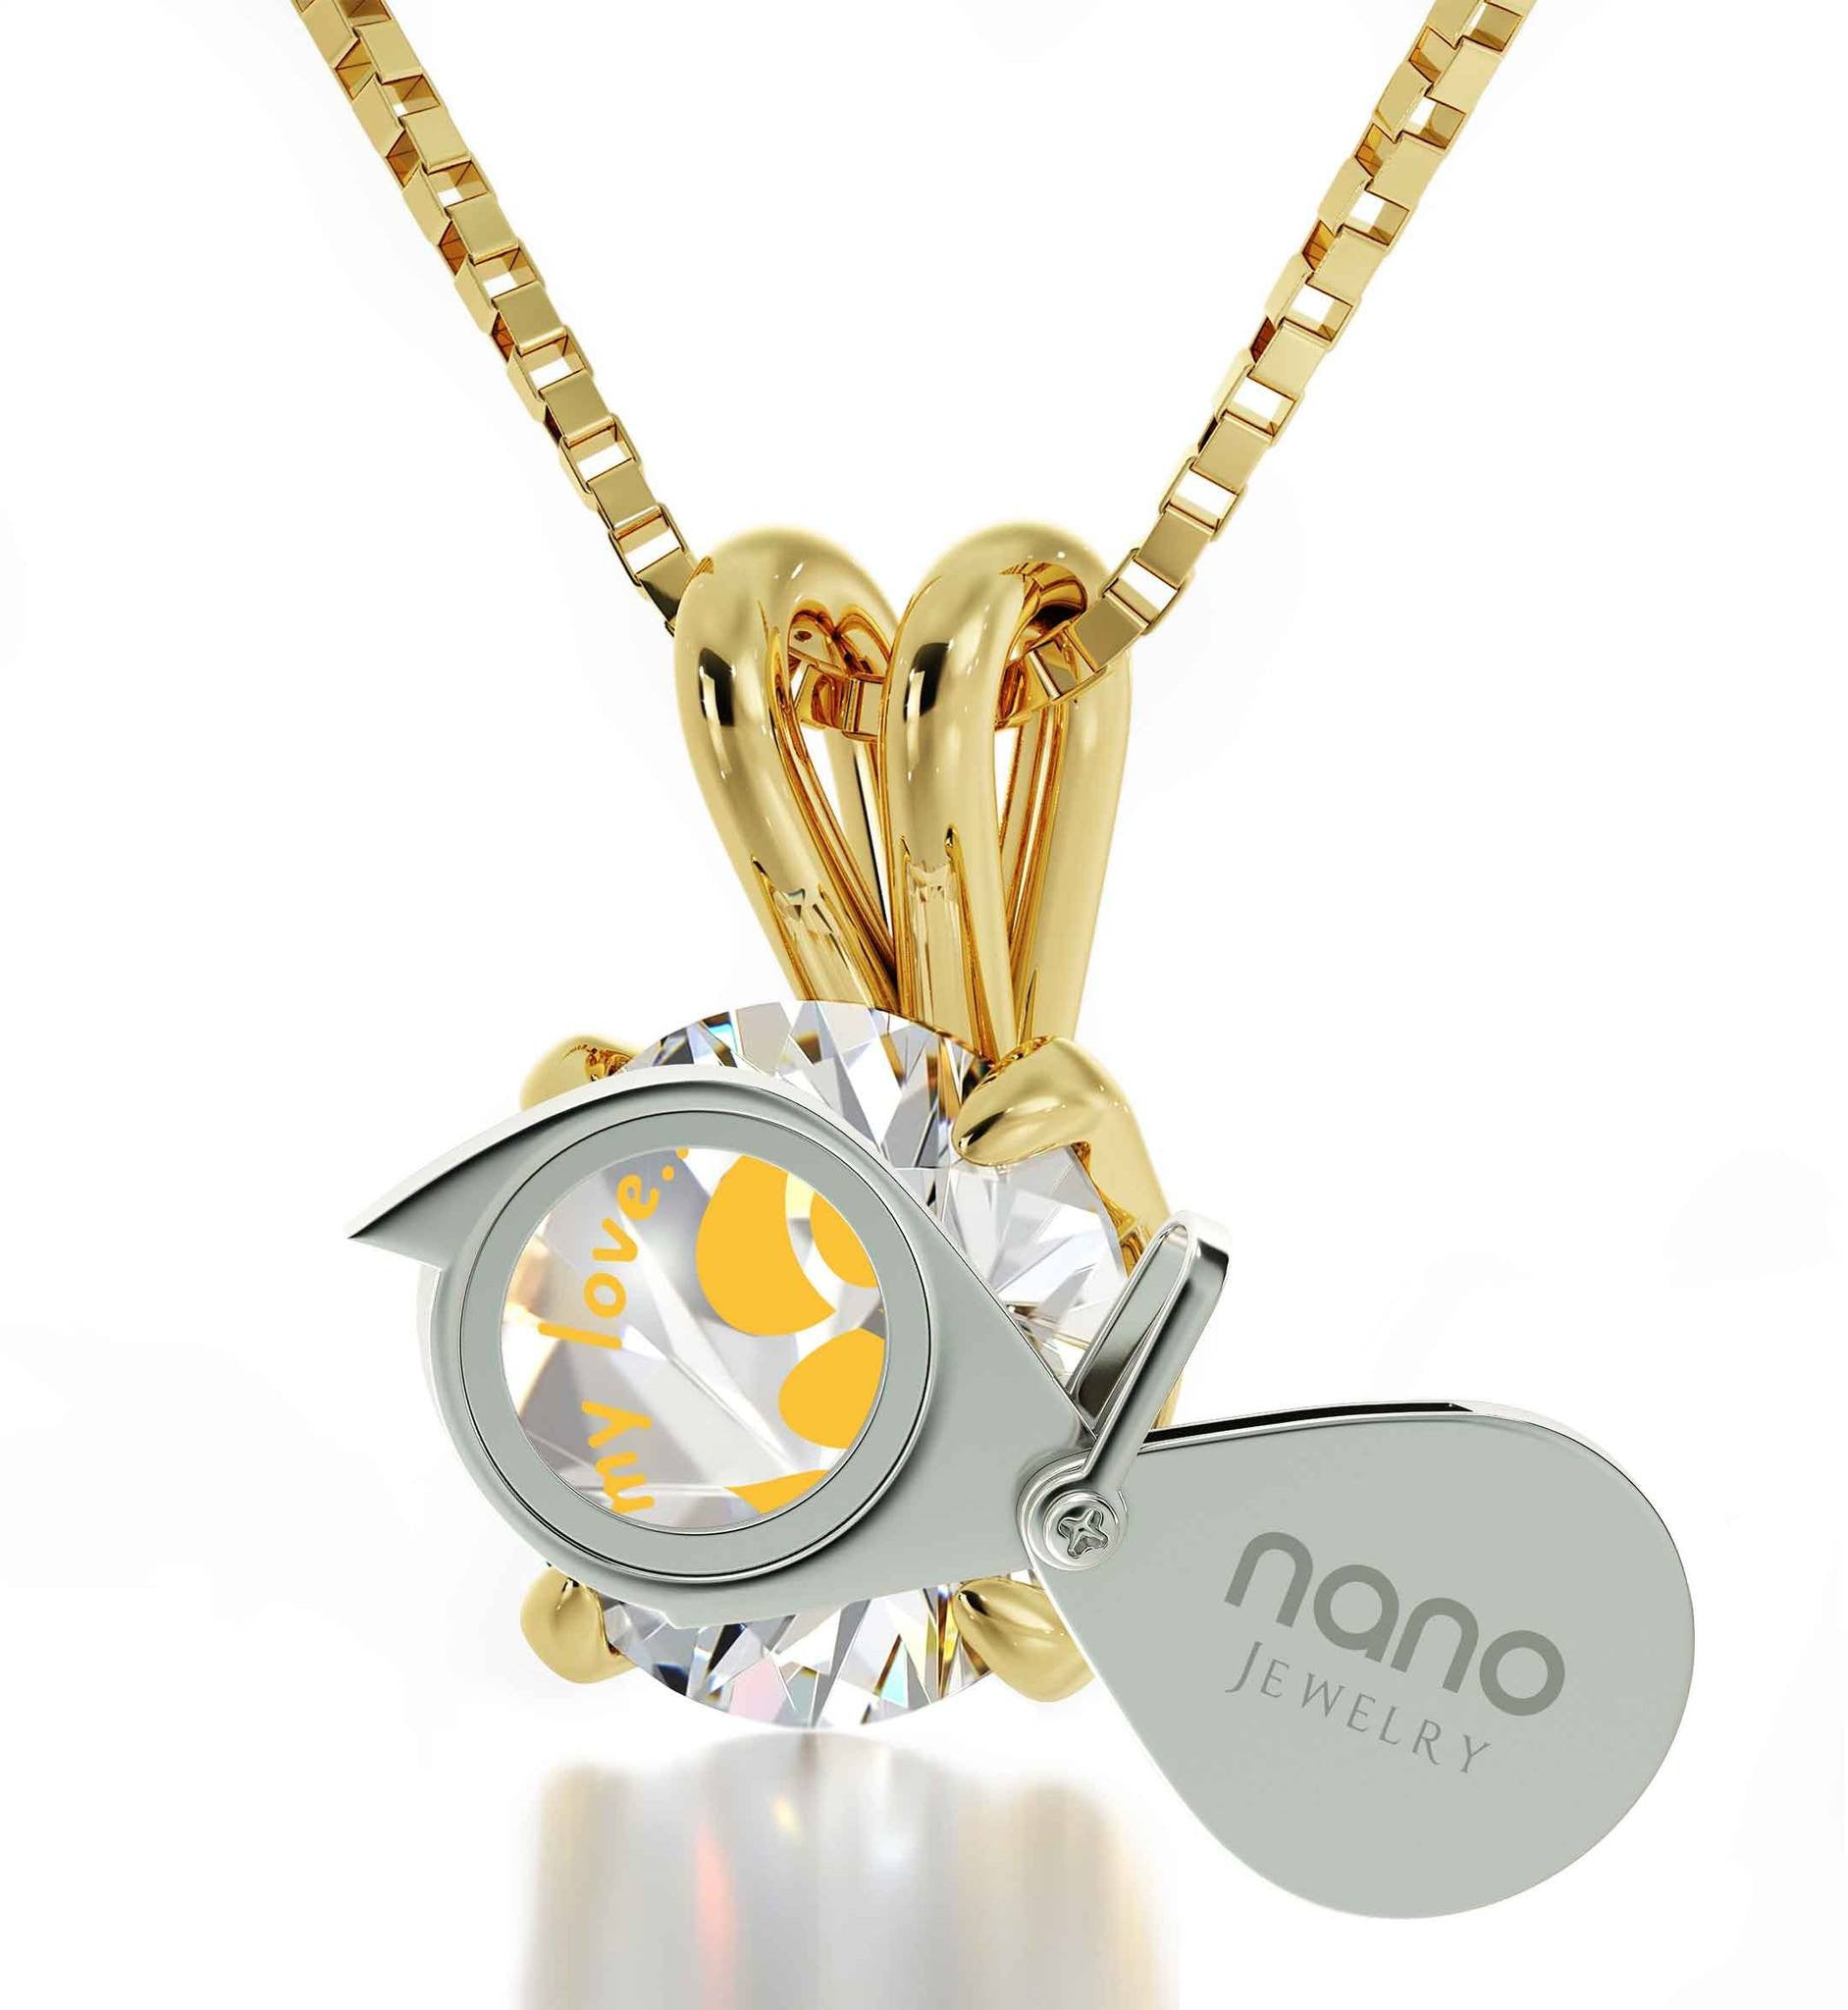 Good presents for girlfriend gift her exclusive nano jewelry now good valentine gifts for girlfriend unique gold filled necklace withcz charm xmas ideas aloadofball Image collections